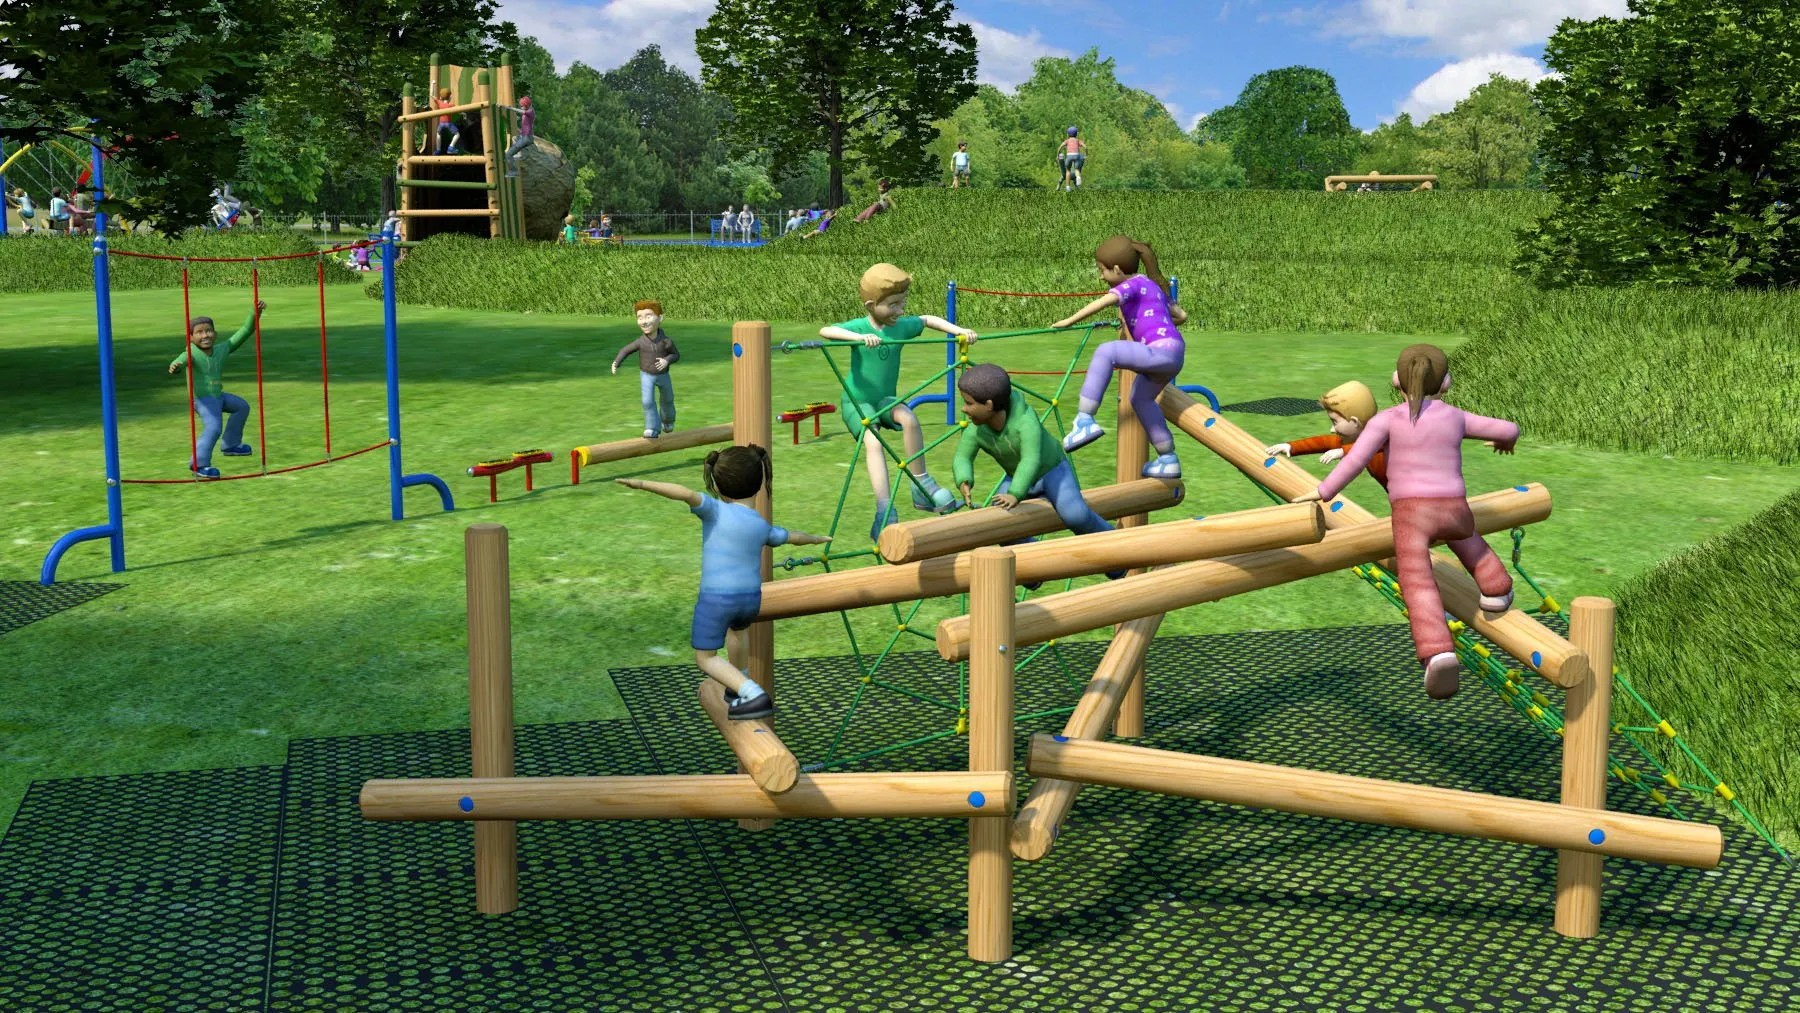 Hillsborough Park Children's Playground Upgrades: Activity Centre